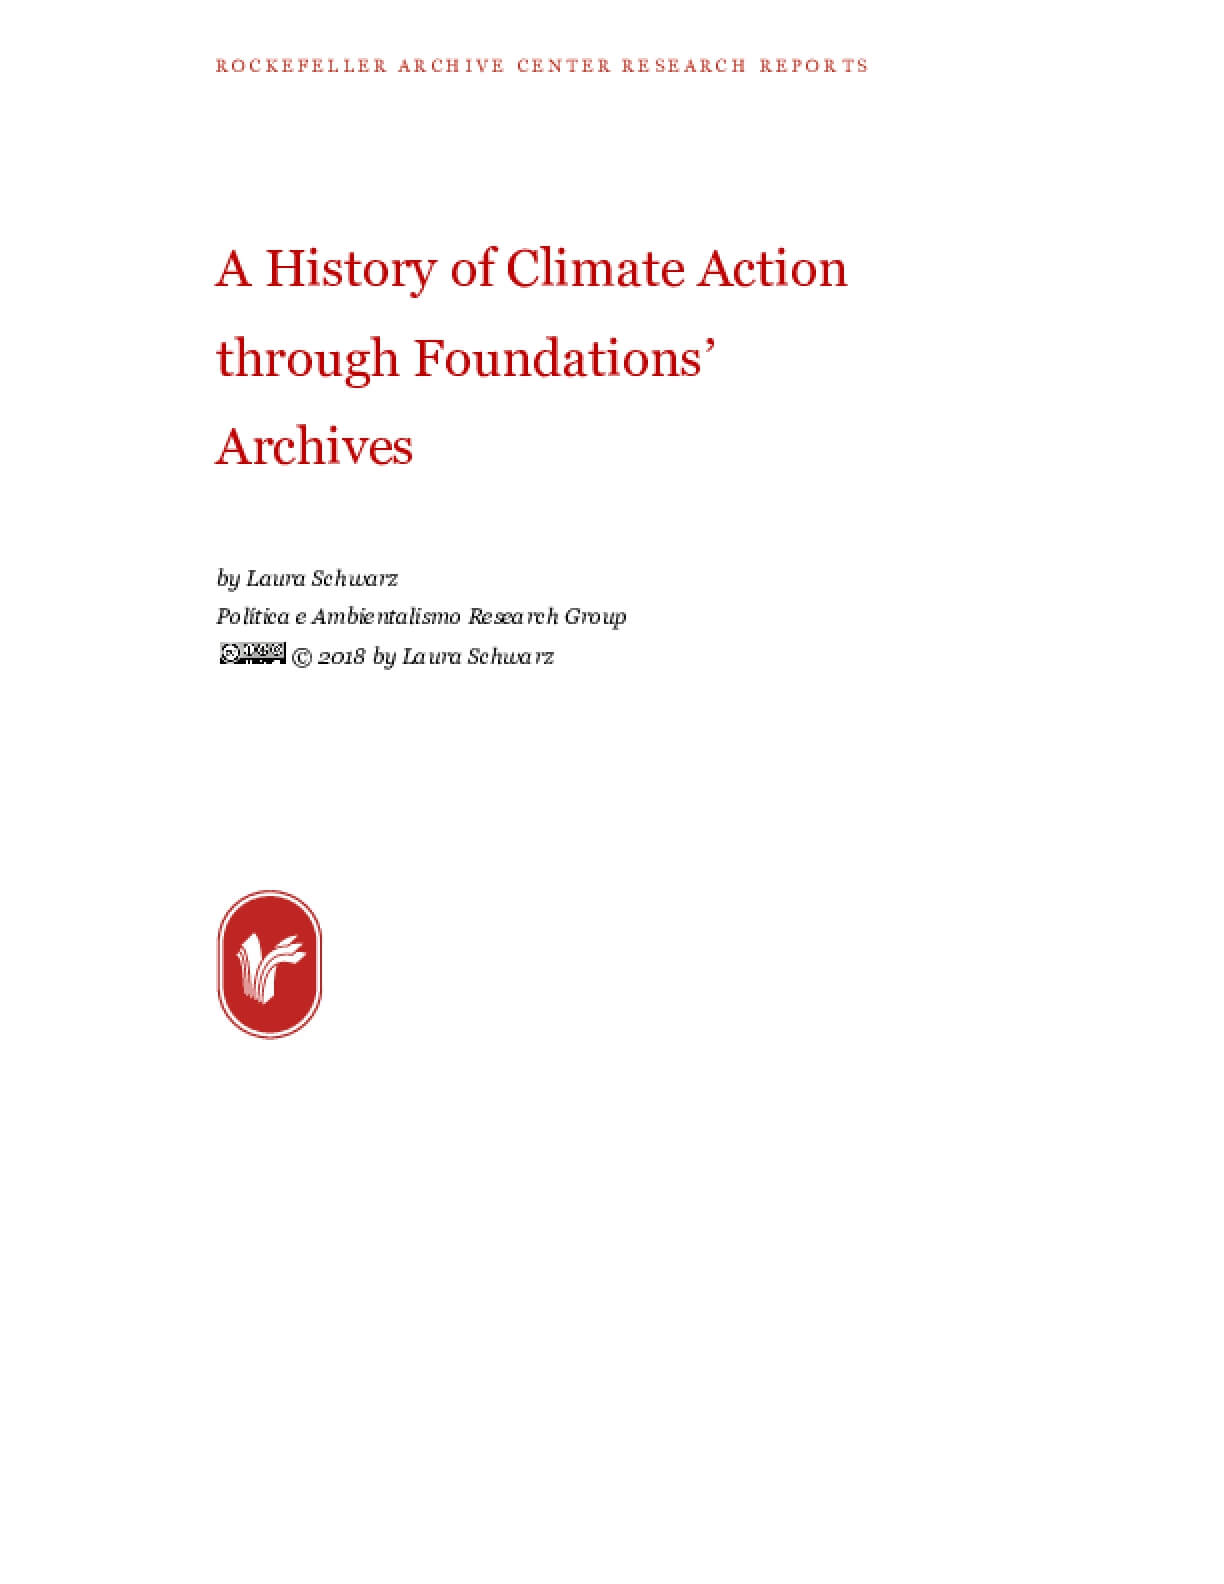 A History of Climate Action through Foundations' Archives